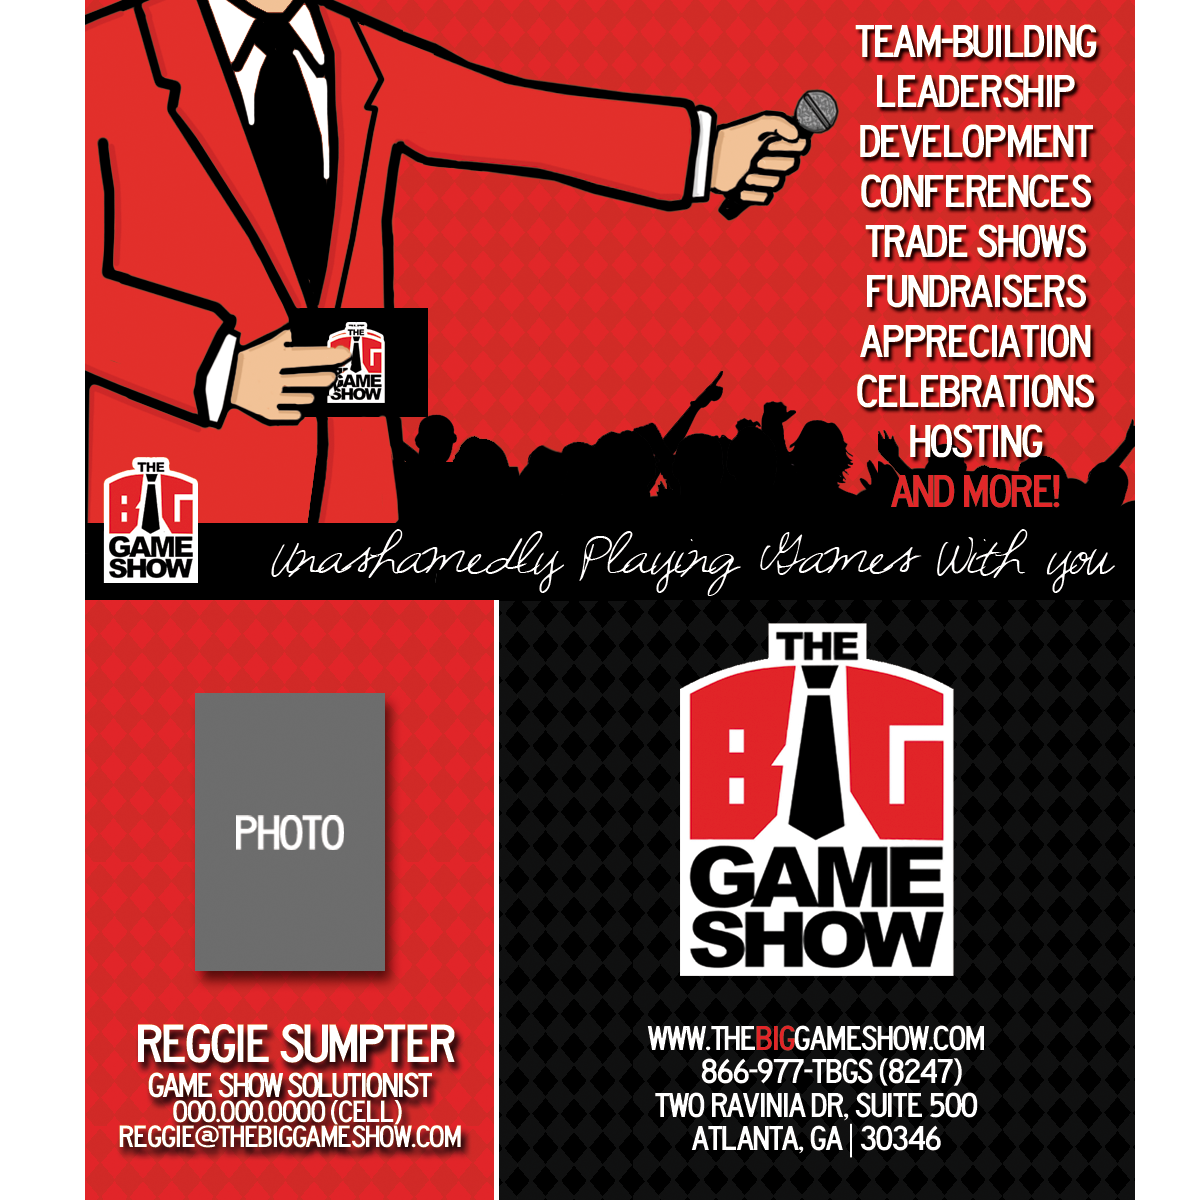 Business Card Design by bambino - Entry No. 29 in the Business Card Design Contest The Big Game Show business cards.